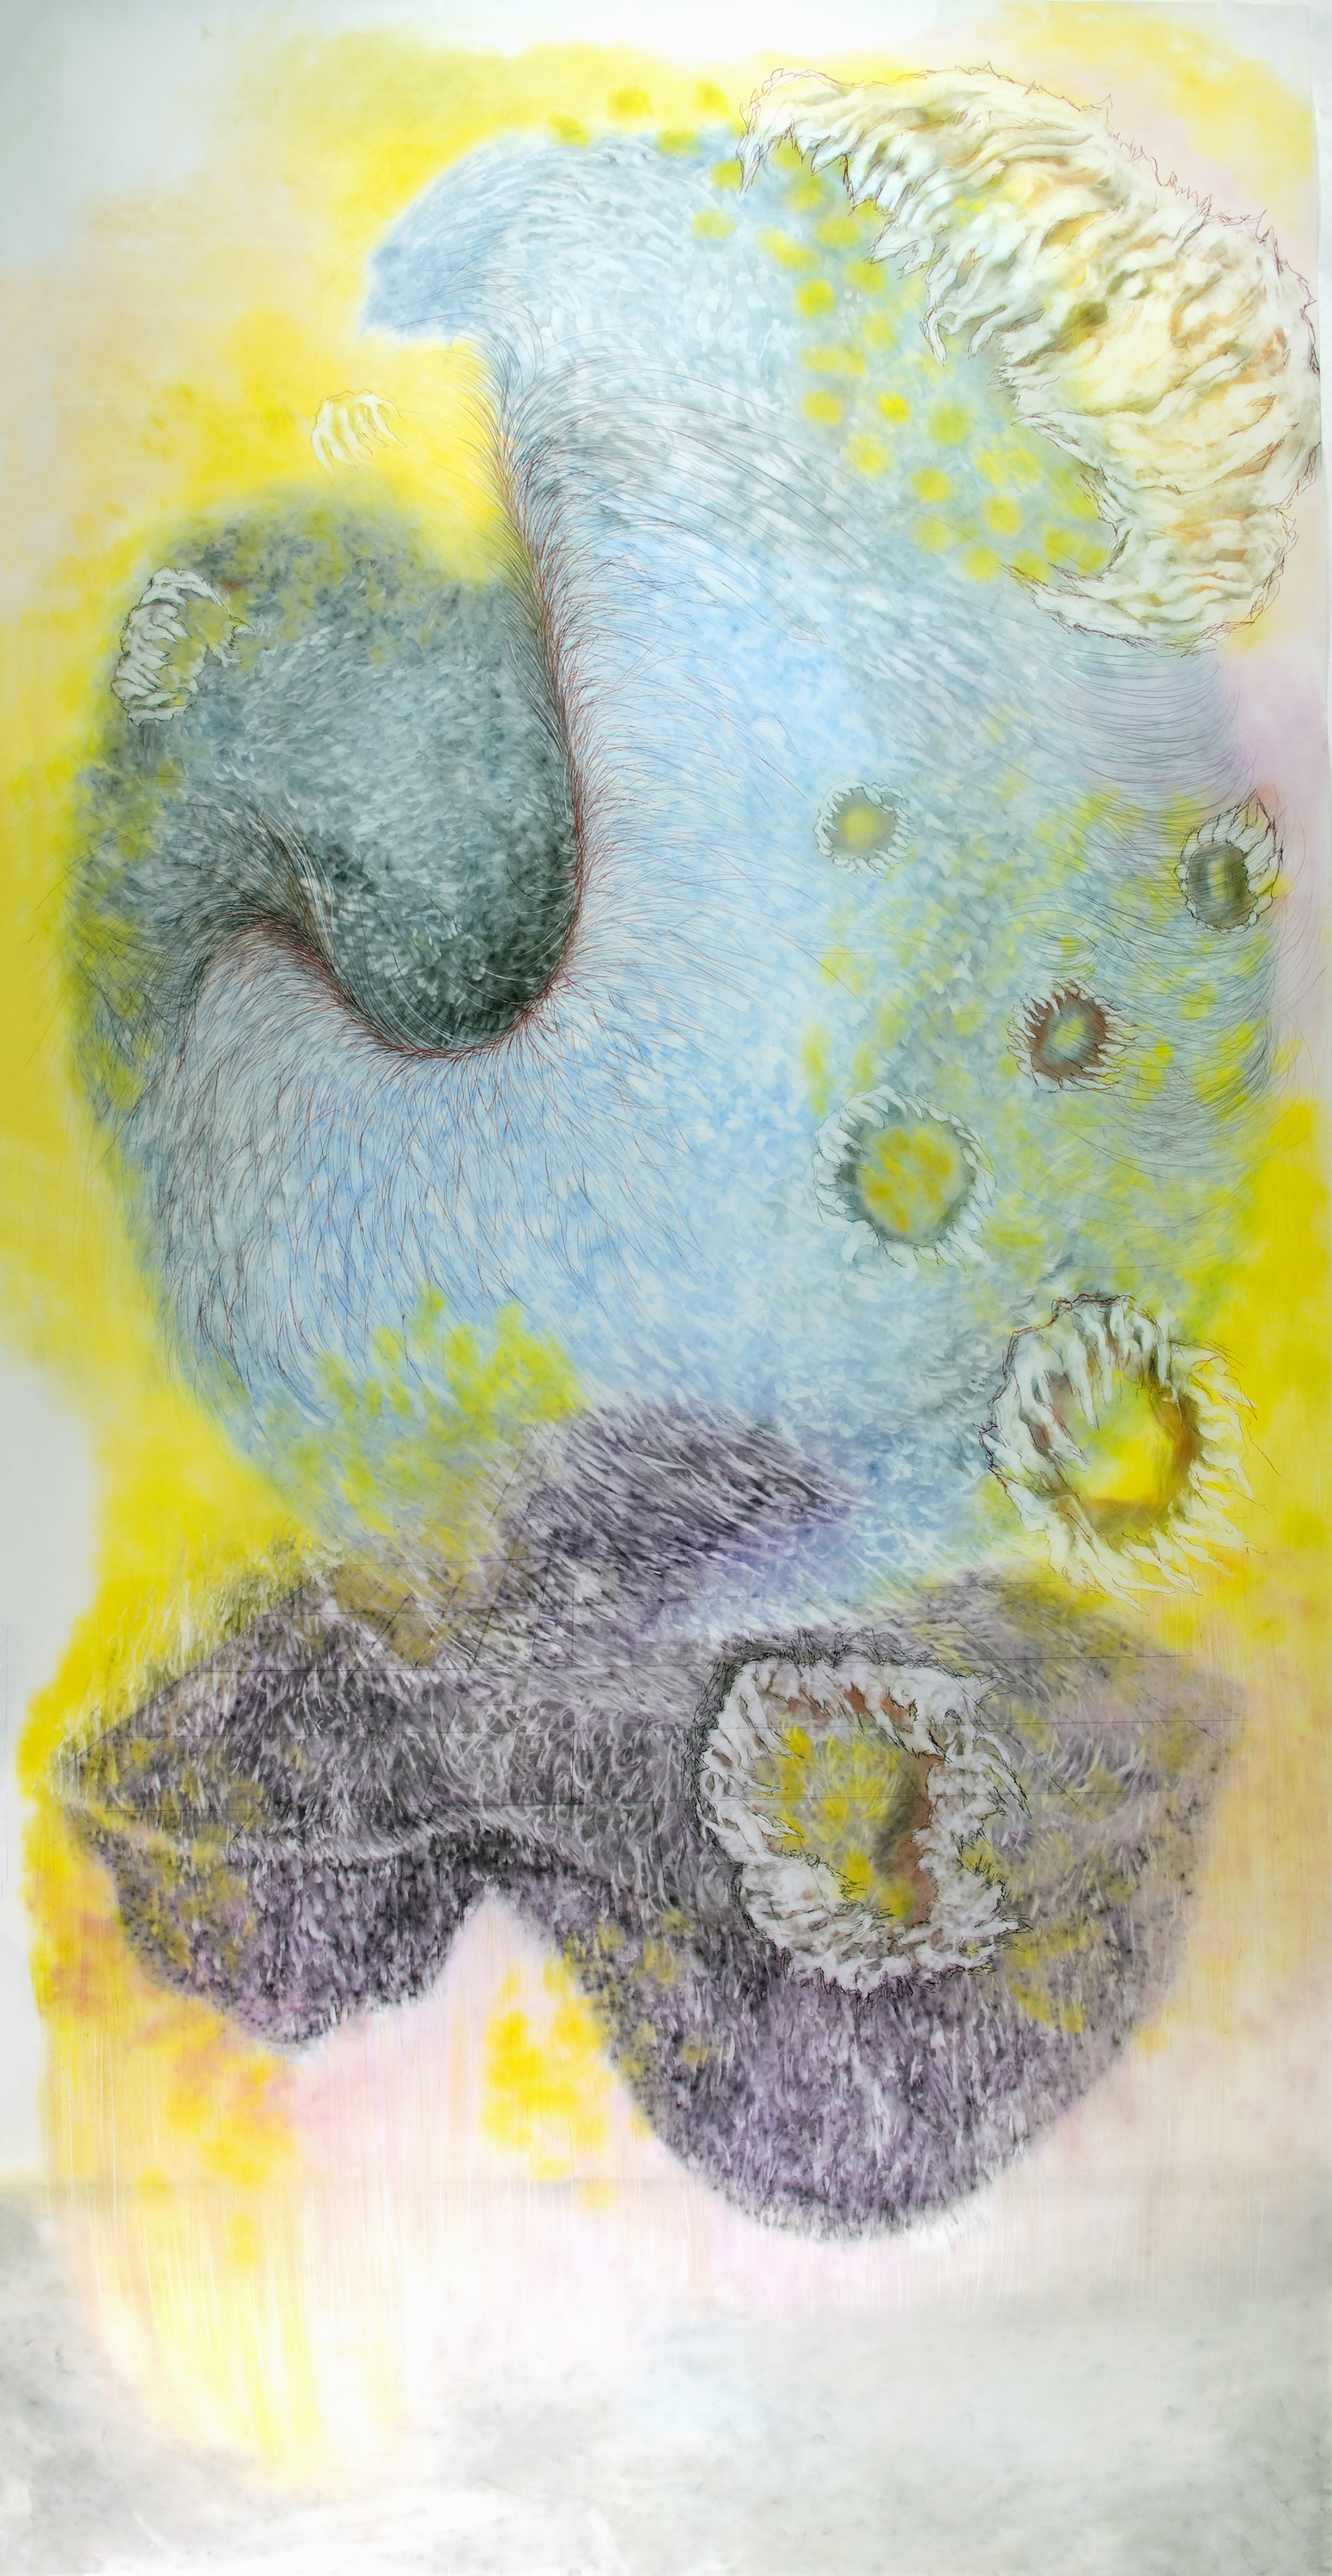 OBSERVED AND RECORDED PERMUTATION OF THE HOLY SPIRIT XV   PASTEL ERASING ON DURA-LAR  40 IN. X 79 IN. unframed  price $4,000